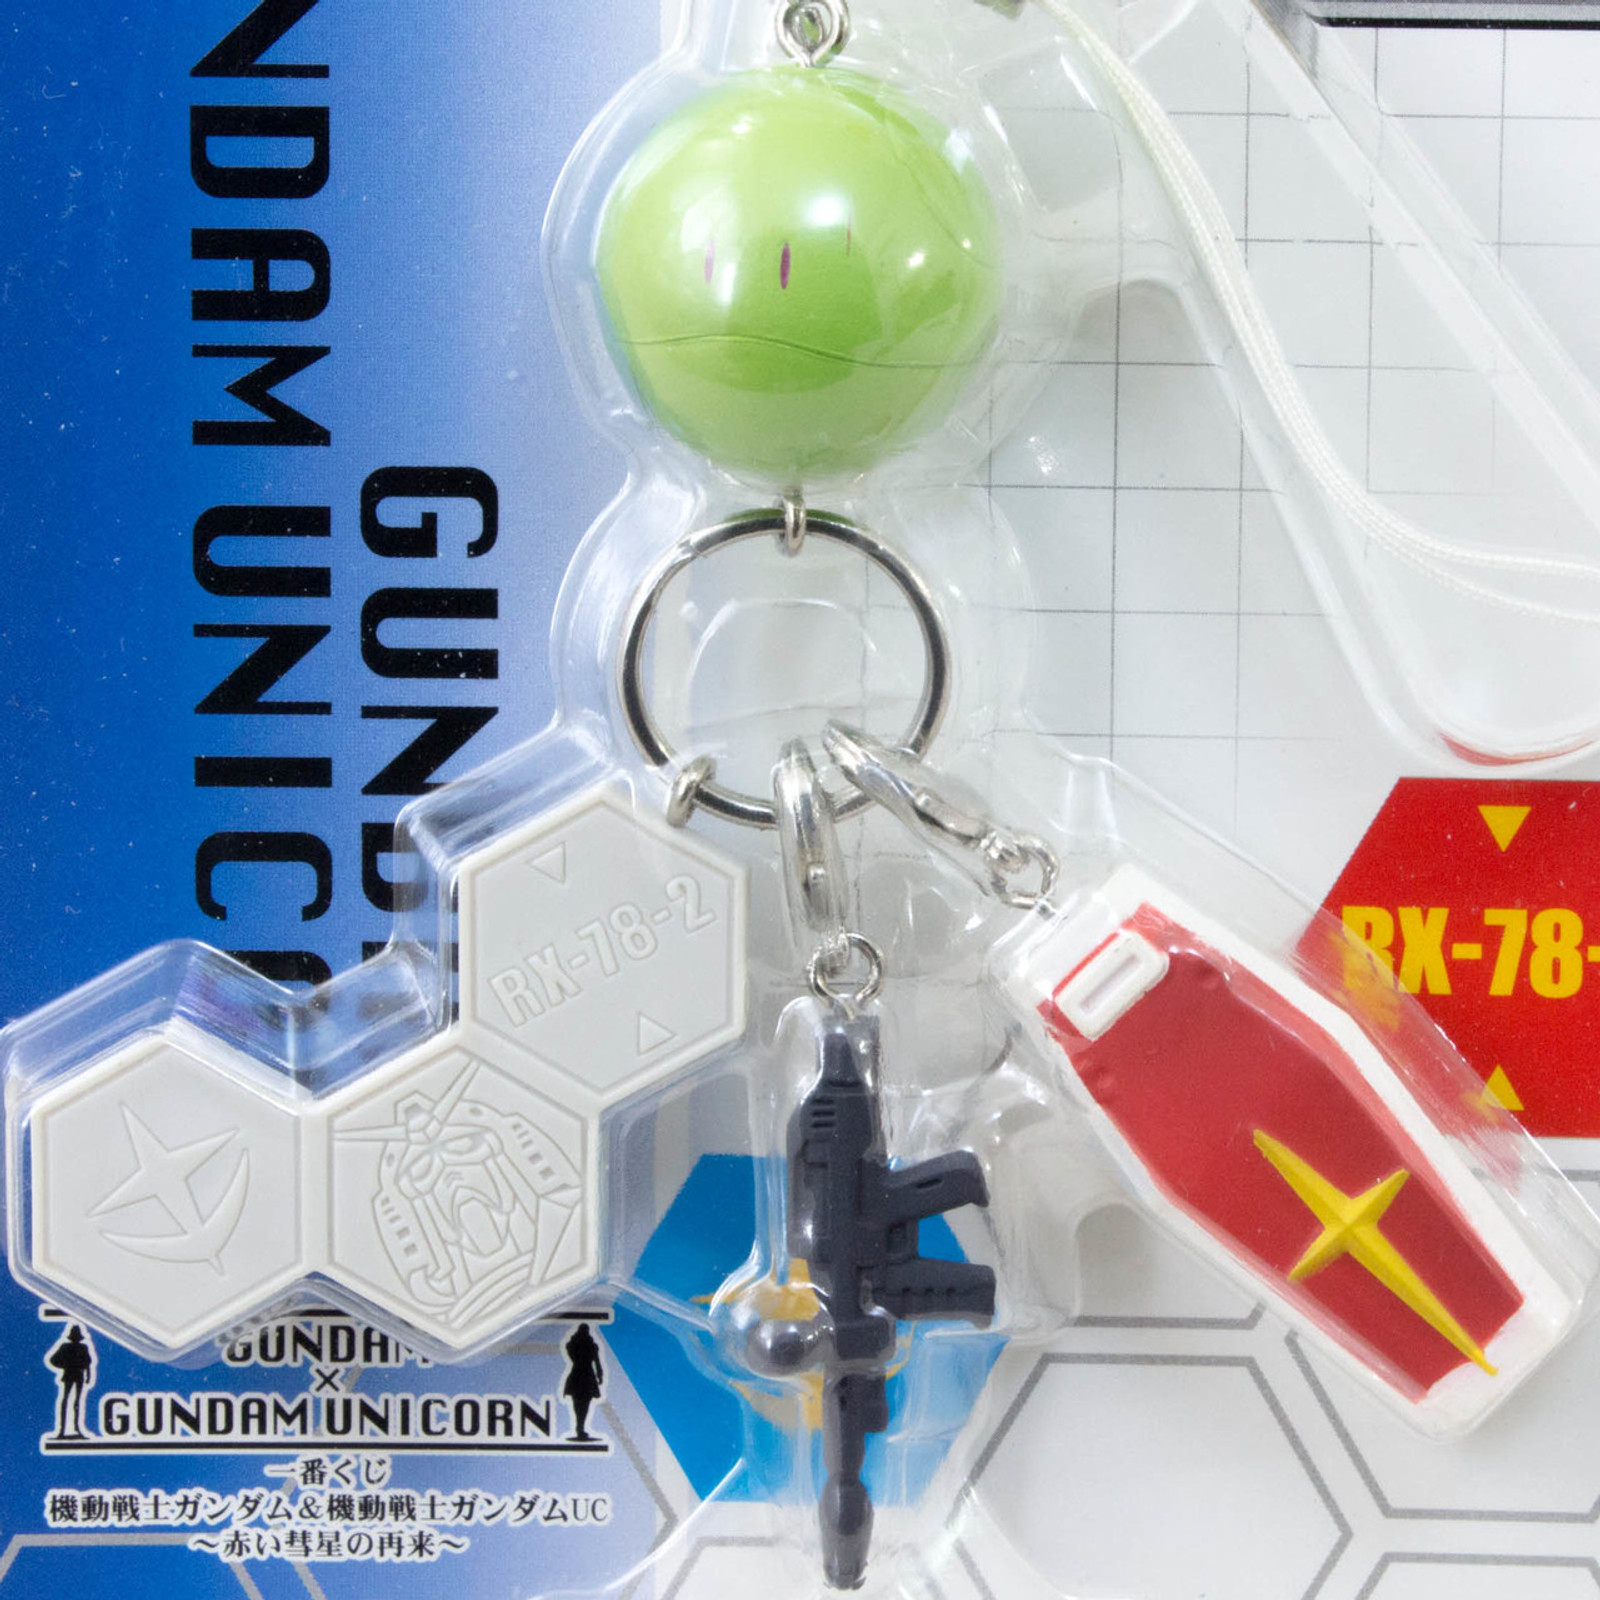 Gundam Mascot Robot Haro + Beam Rifle Figure Mobile Strap 2 JAPAN ANIME MANGA